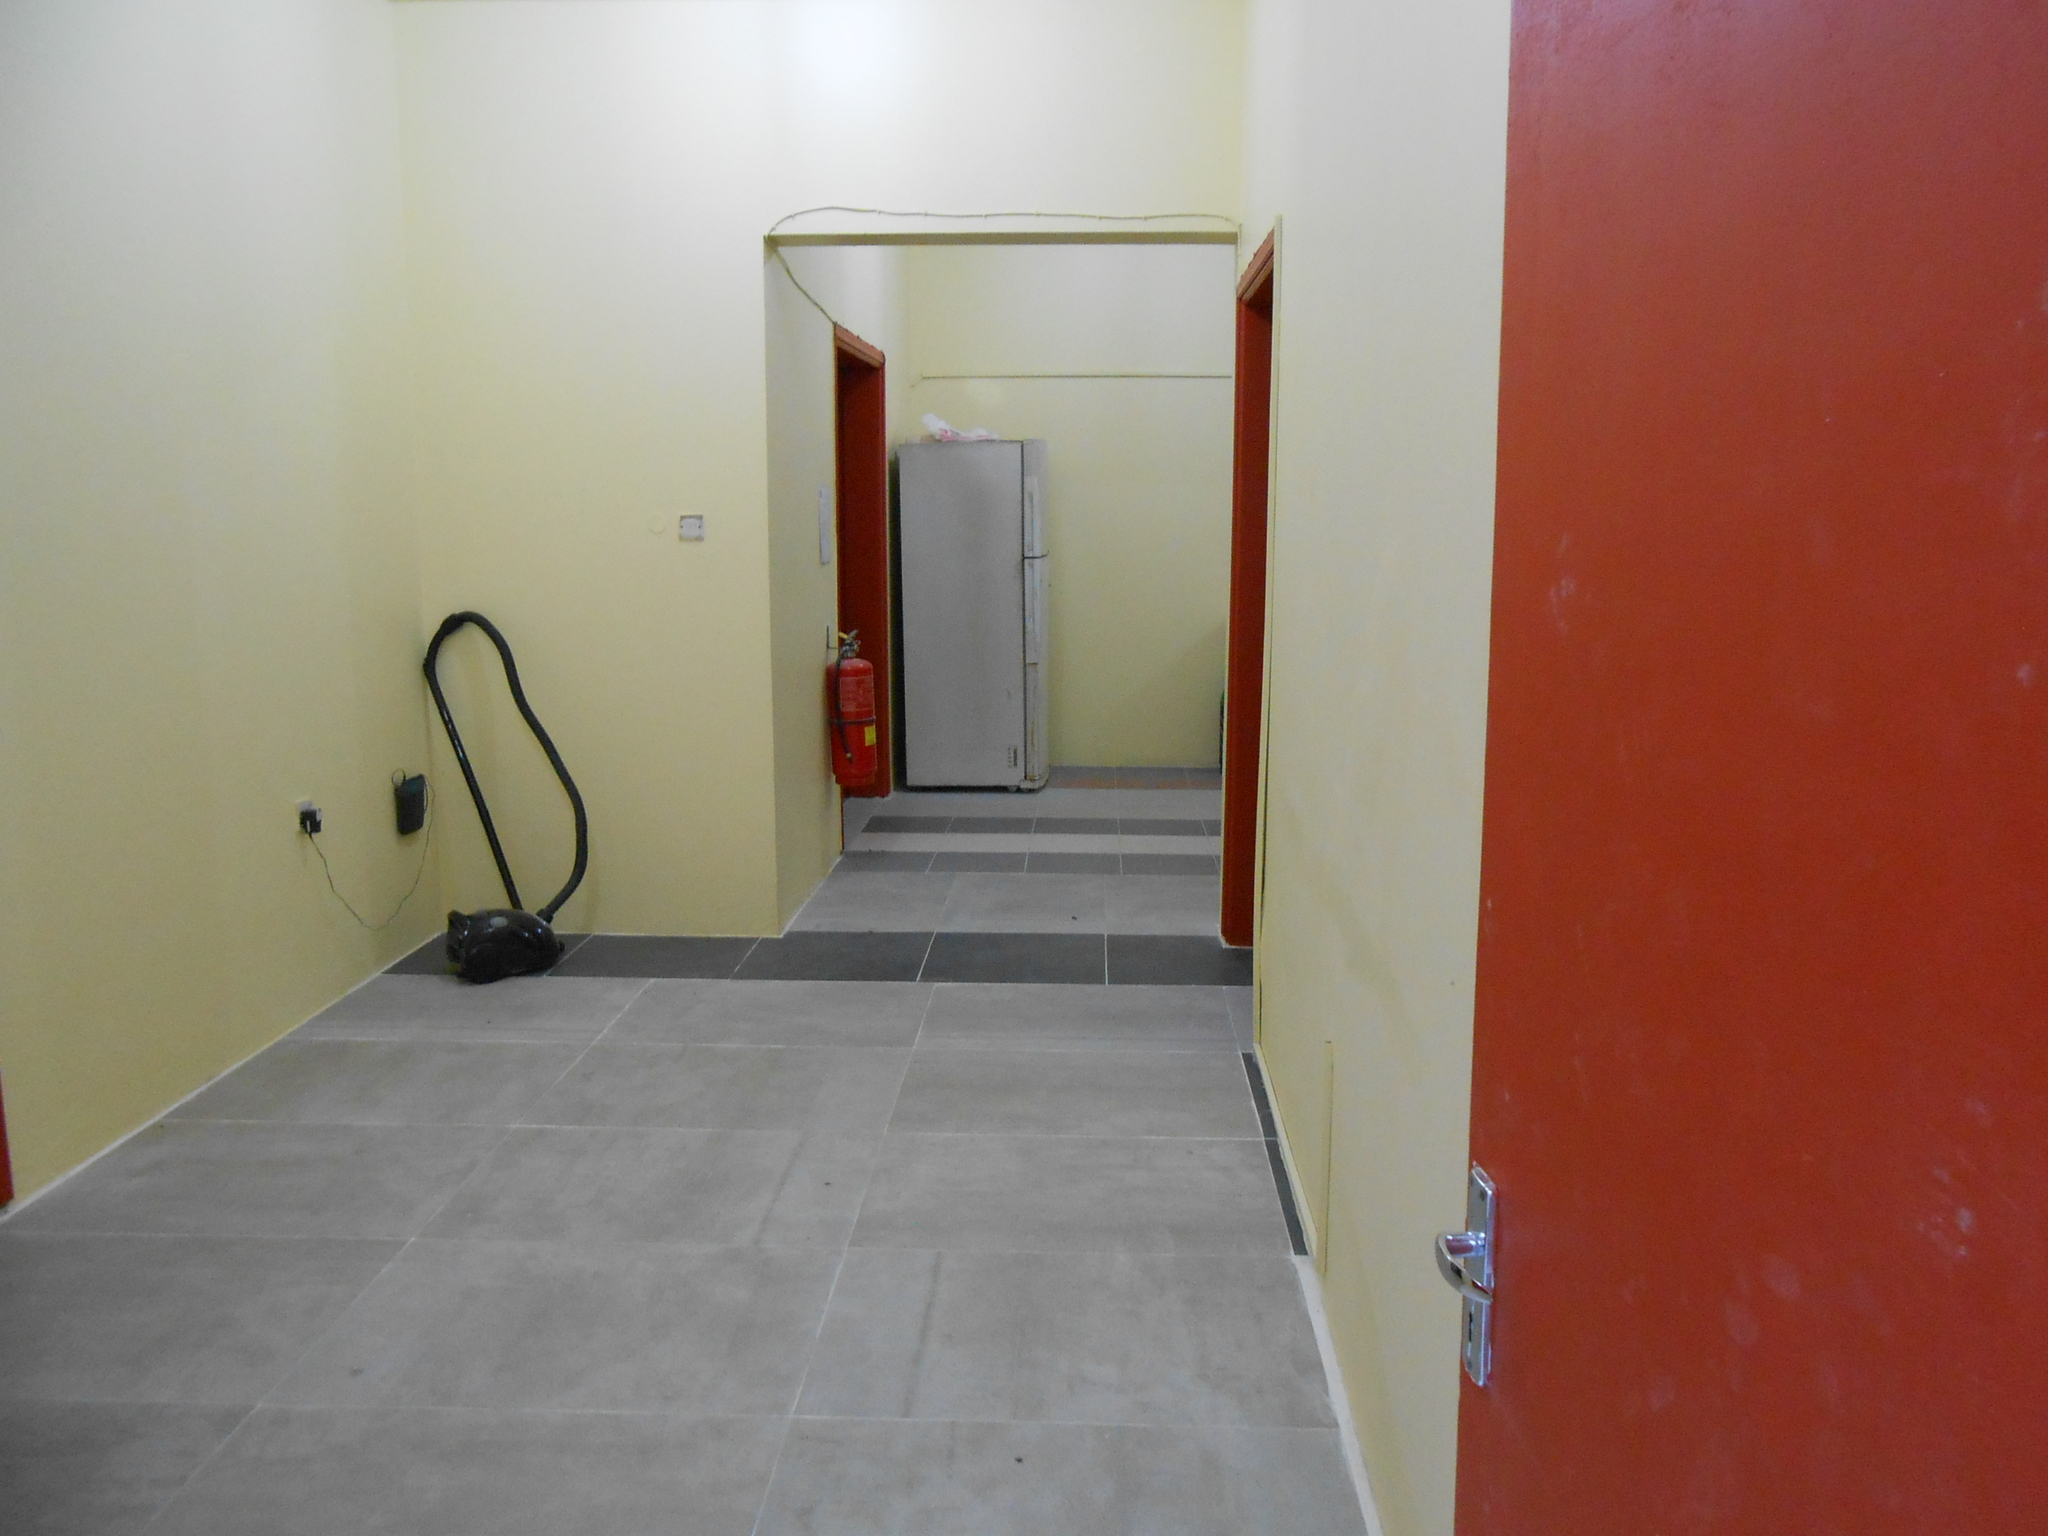 EXECUTIVE ROOM & BEDSPACE FOR RENT